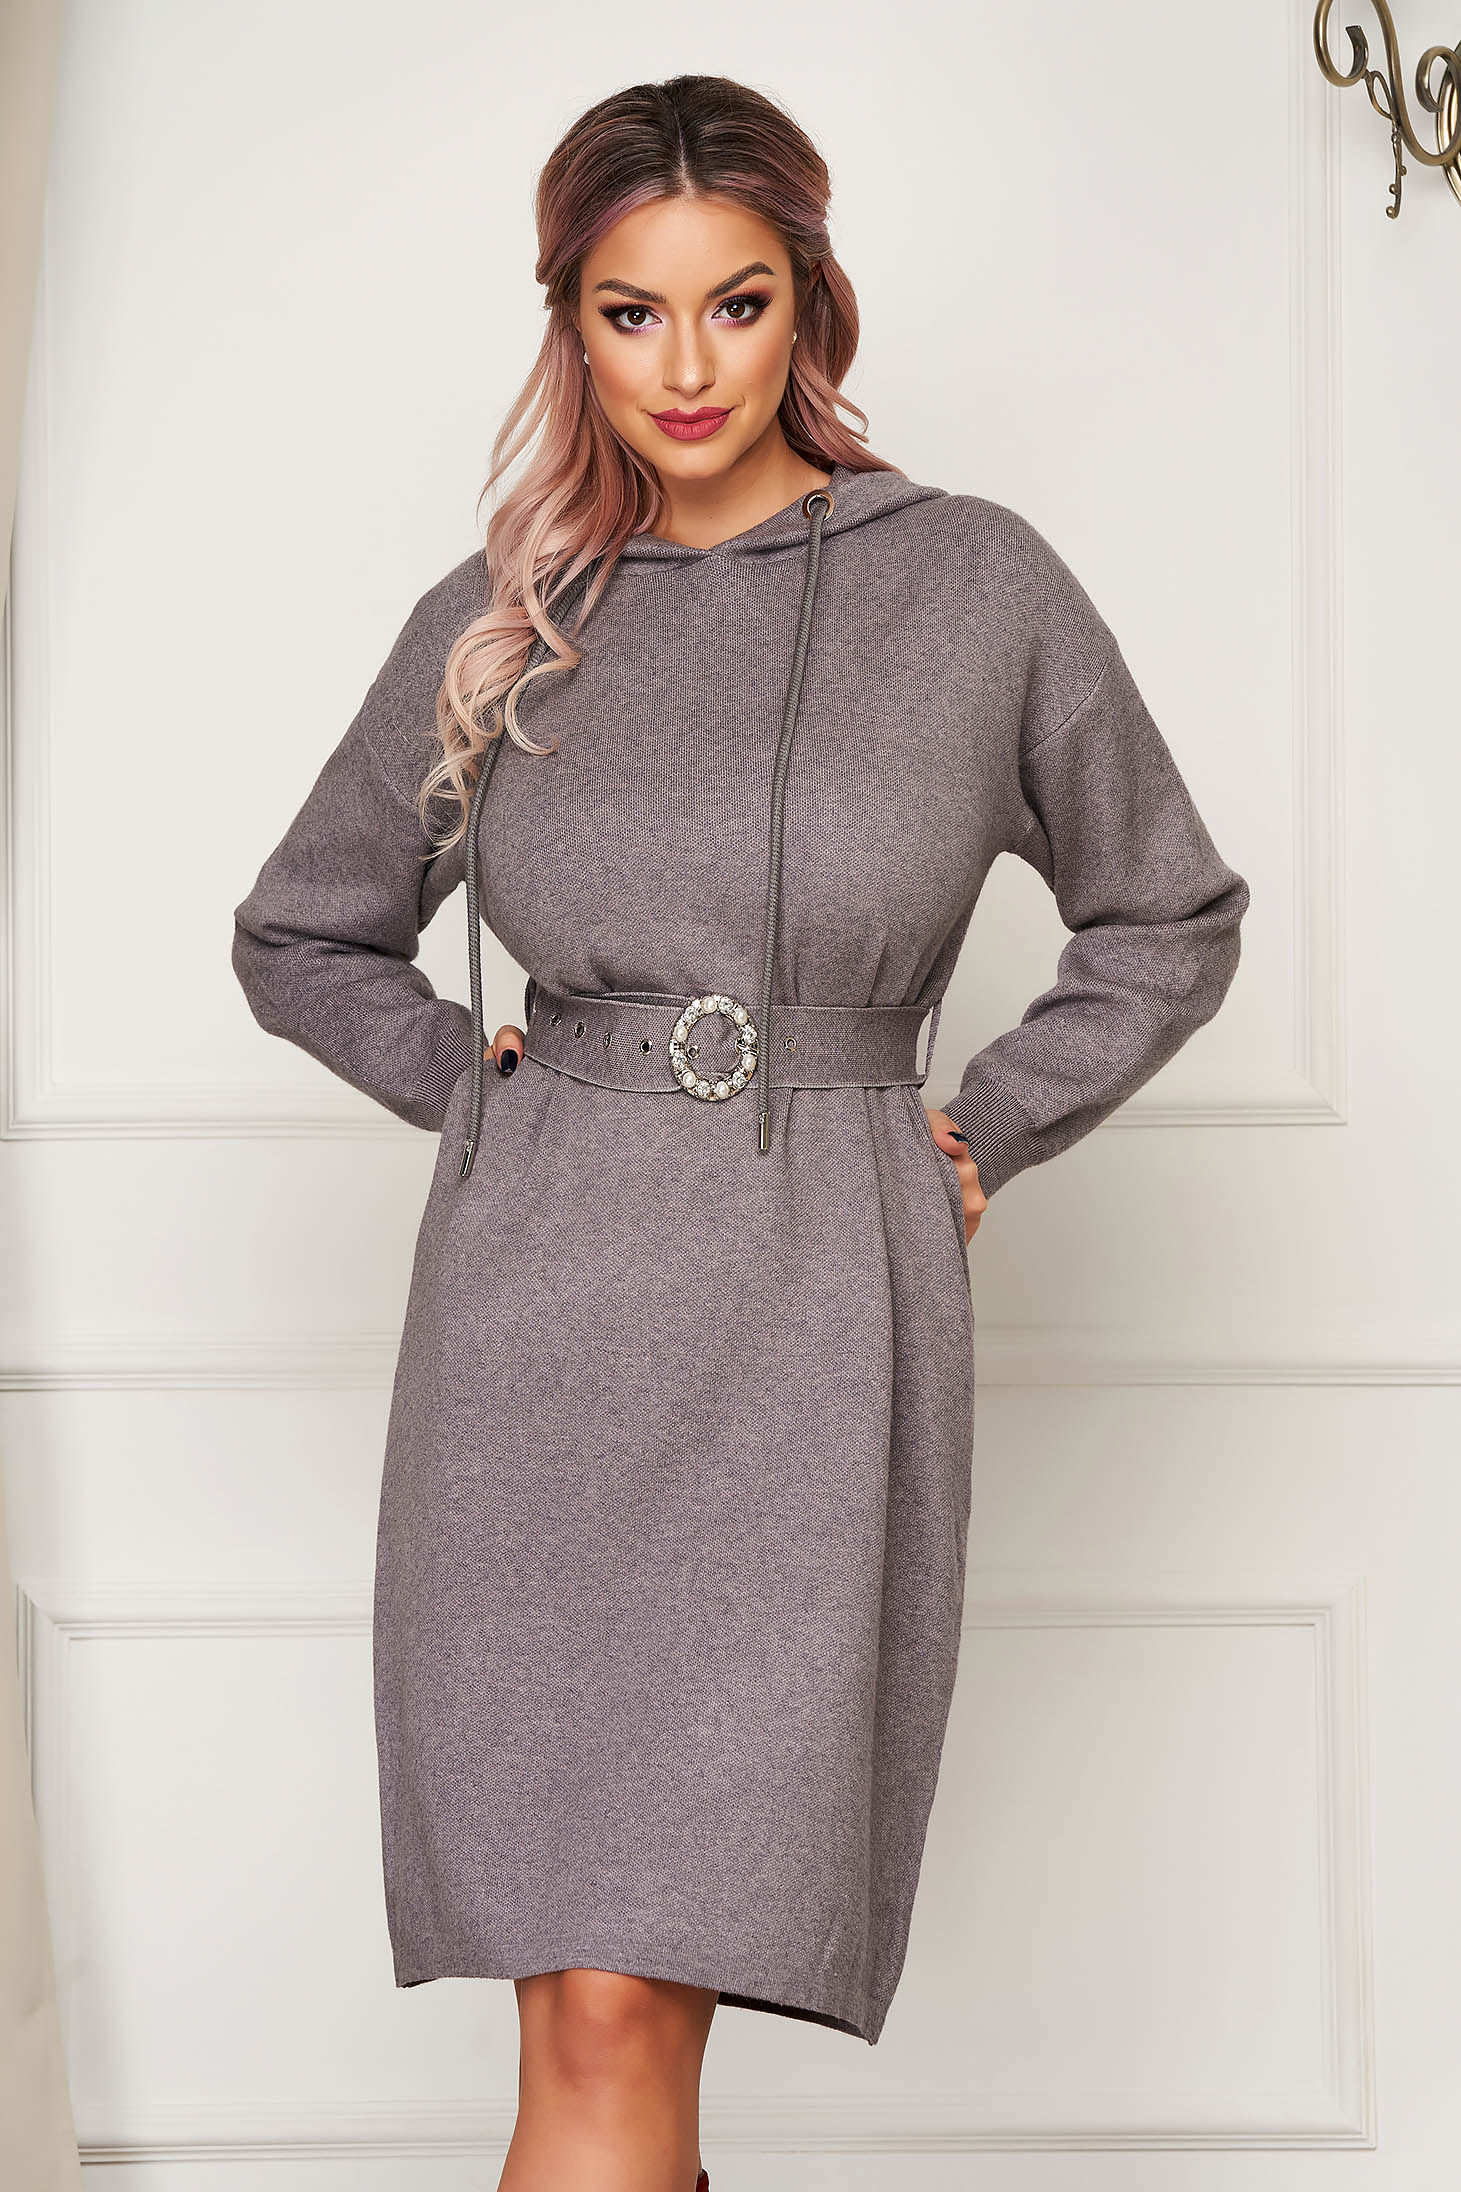 Grey dress midi daily knitted long sleeved with undetachable hood